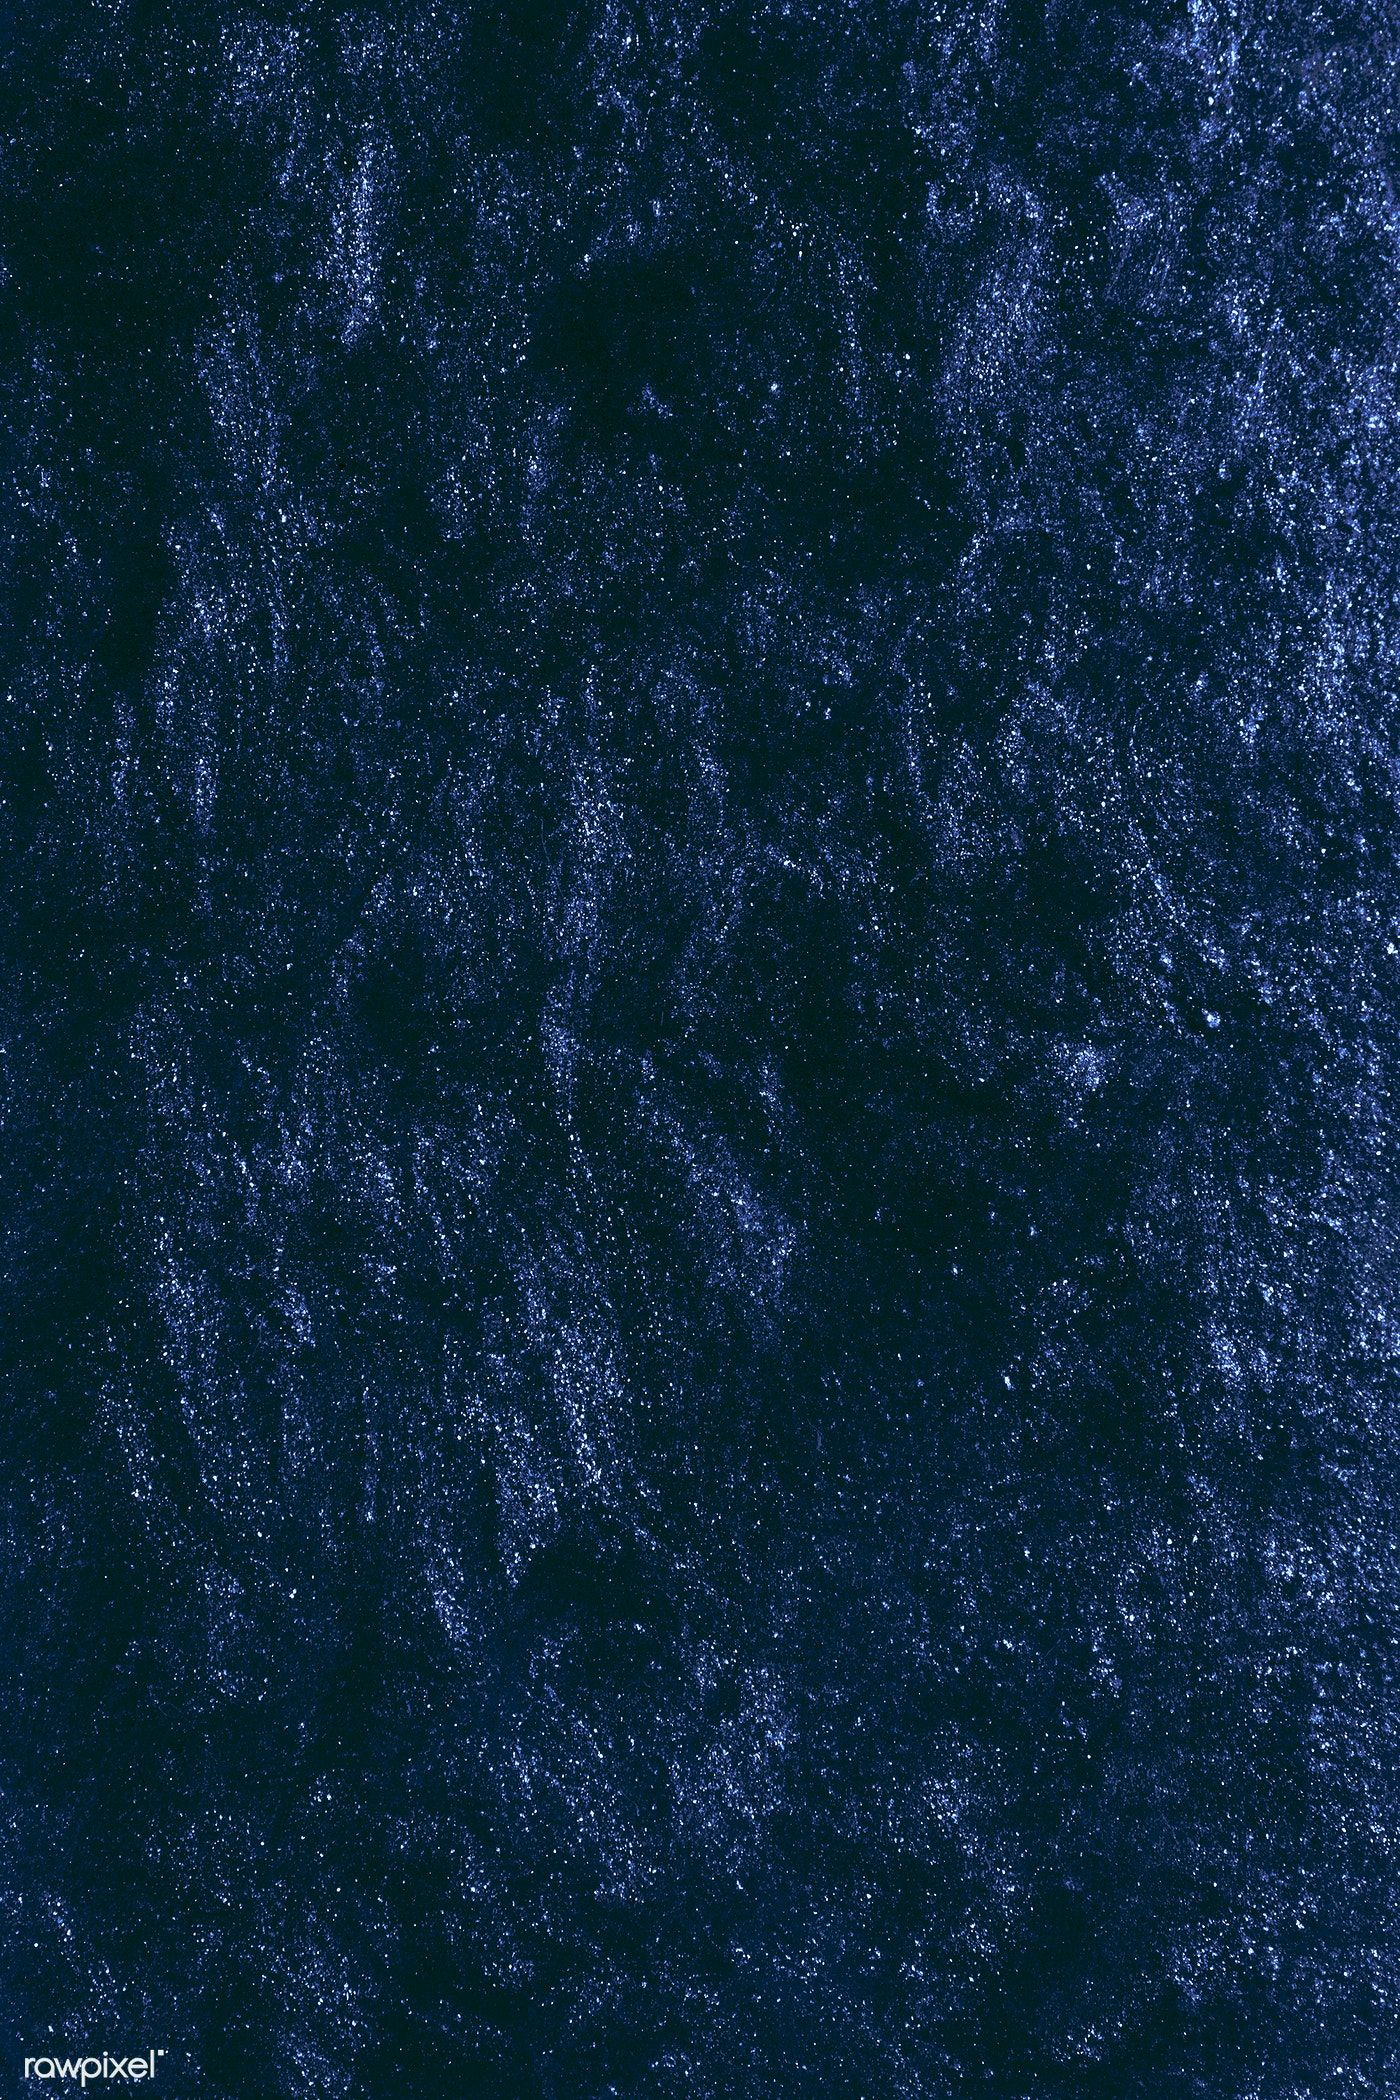 Midnight blue textured background free image by rawpixel